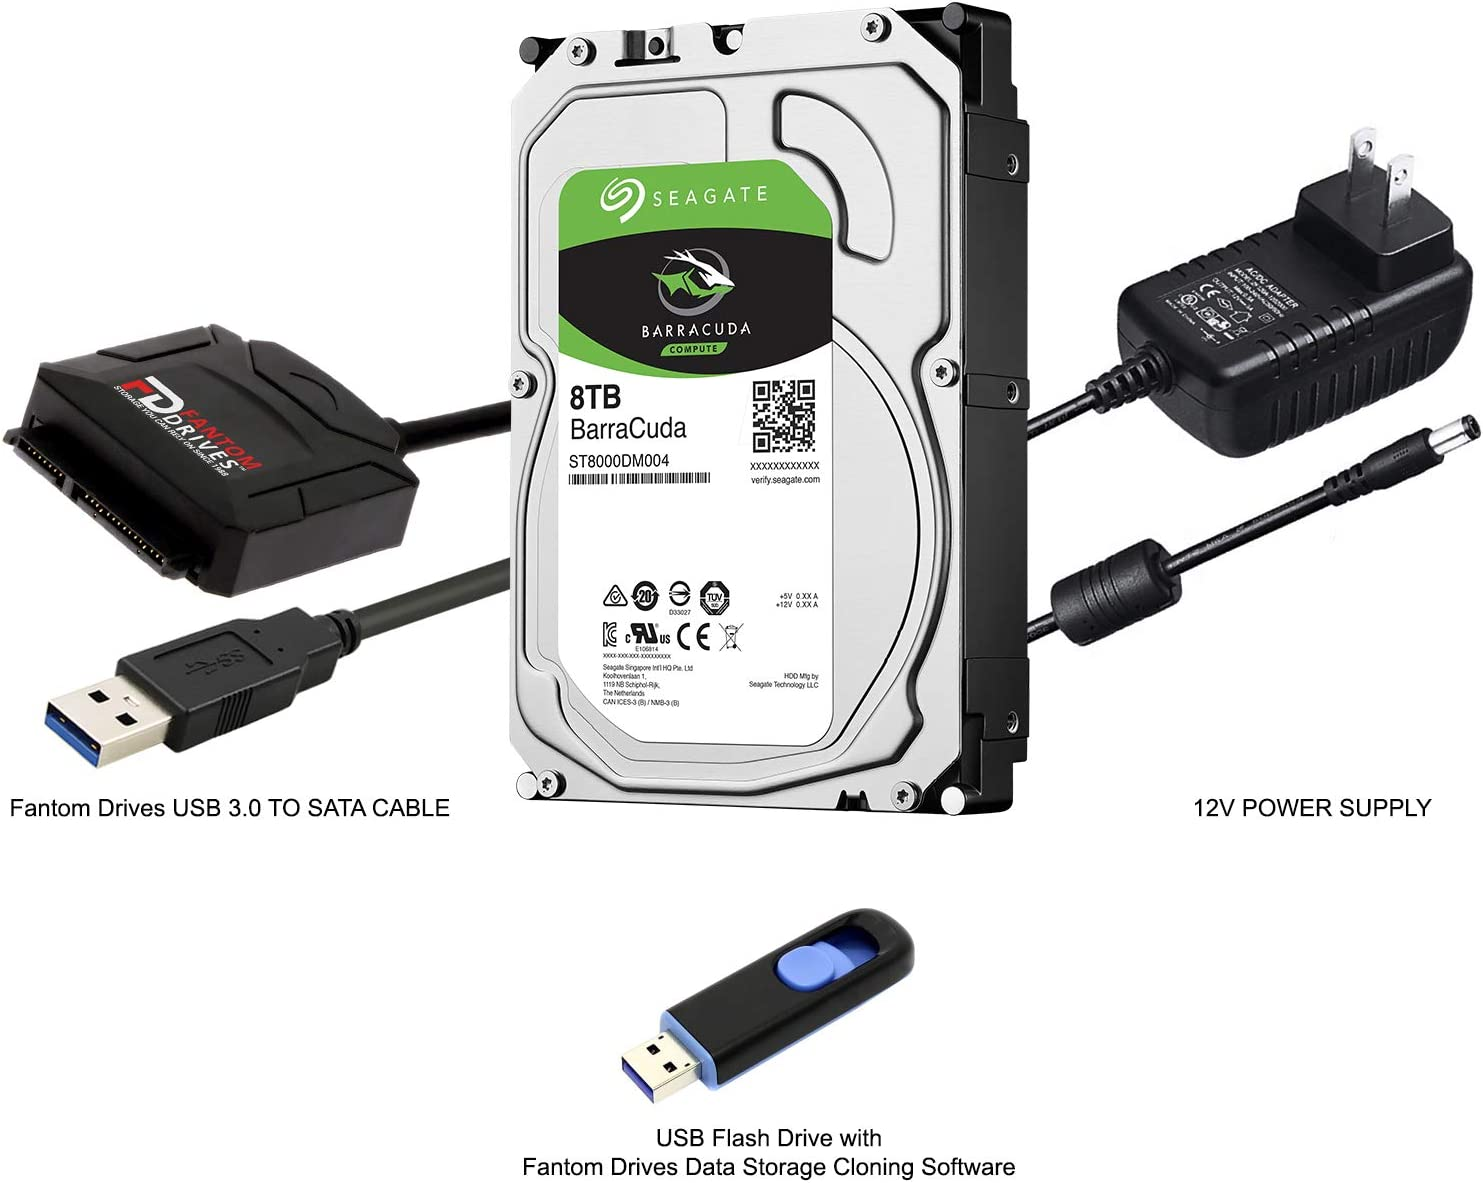 FD 8TB Hard Drive Upgrade Kit with Seagate Barracuda ST8000DM004 for PC and External HDD, Fantom Drives SATA to USB 3.0 Converter and Fantom Drives Cloning Software Inside USB Flash Drive